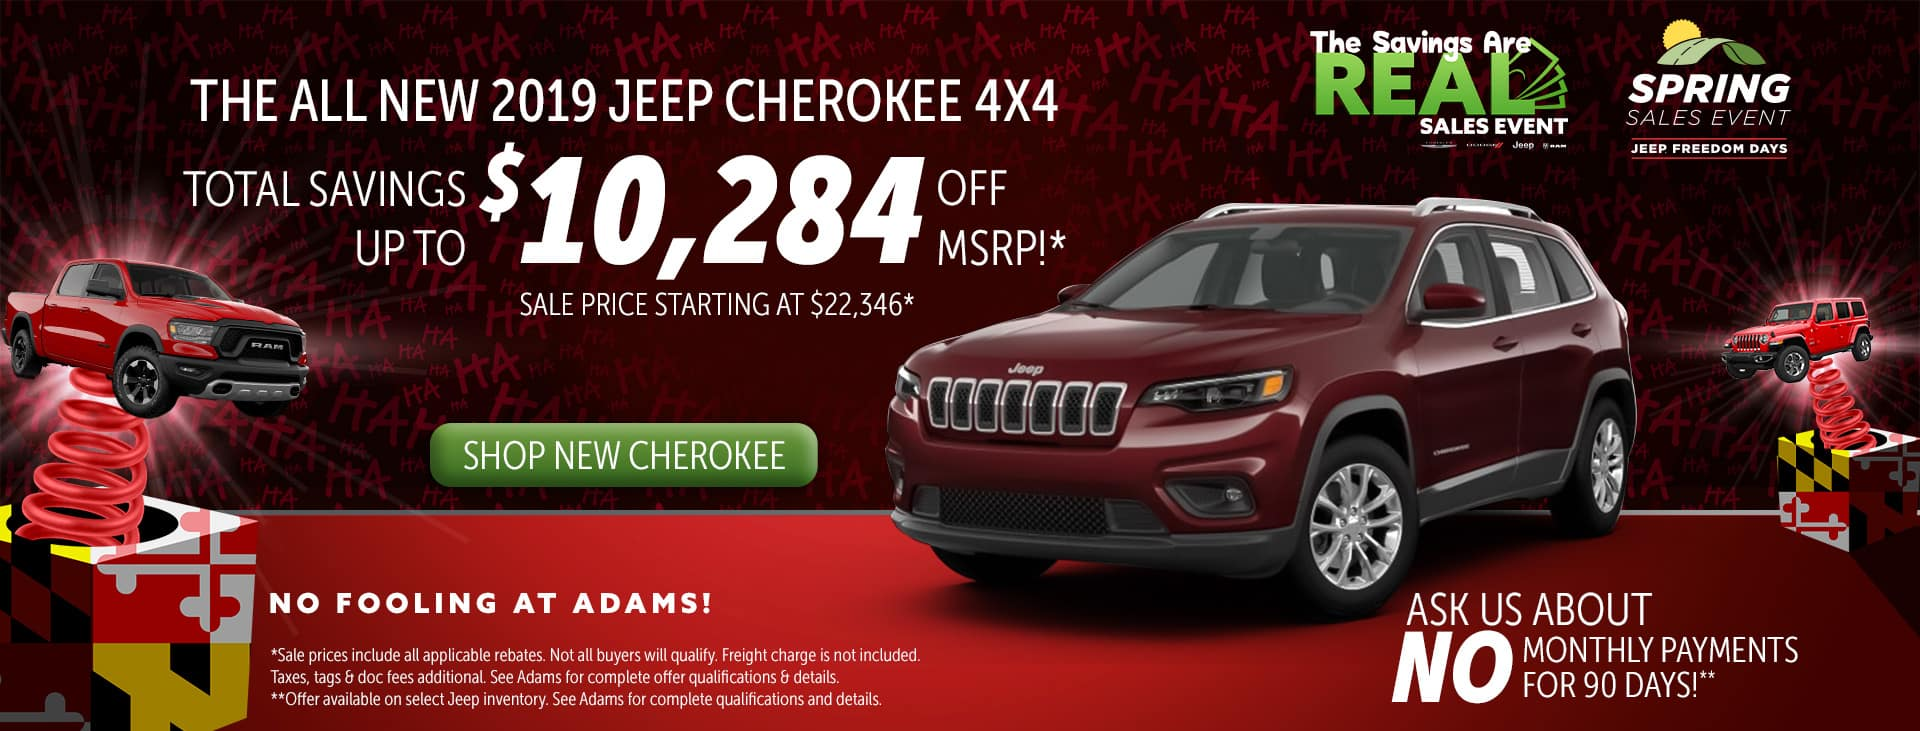 over 10,000 off jeep cherokee!